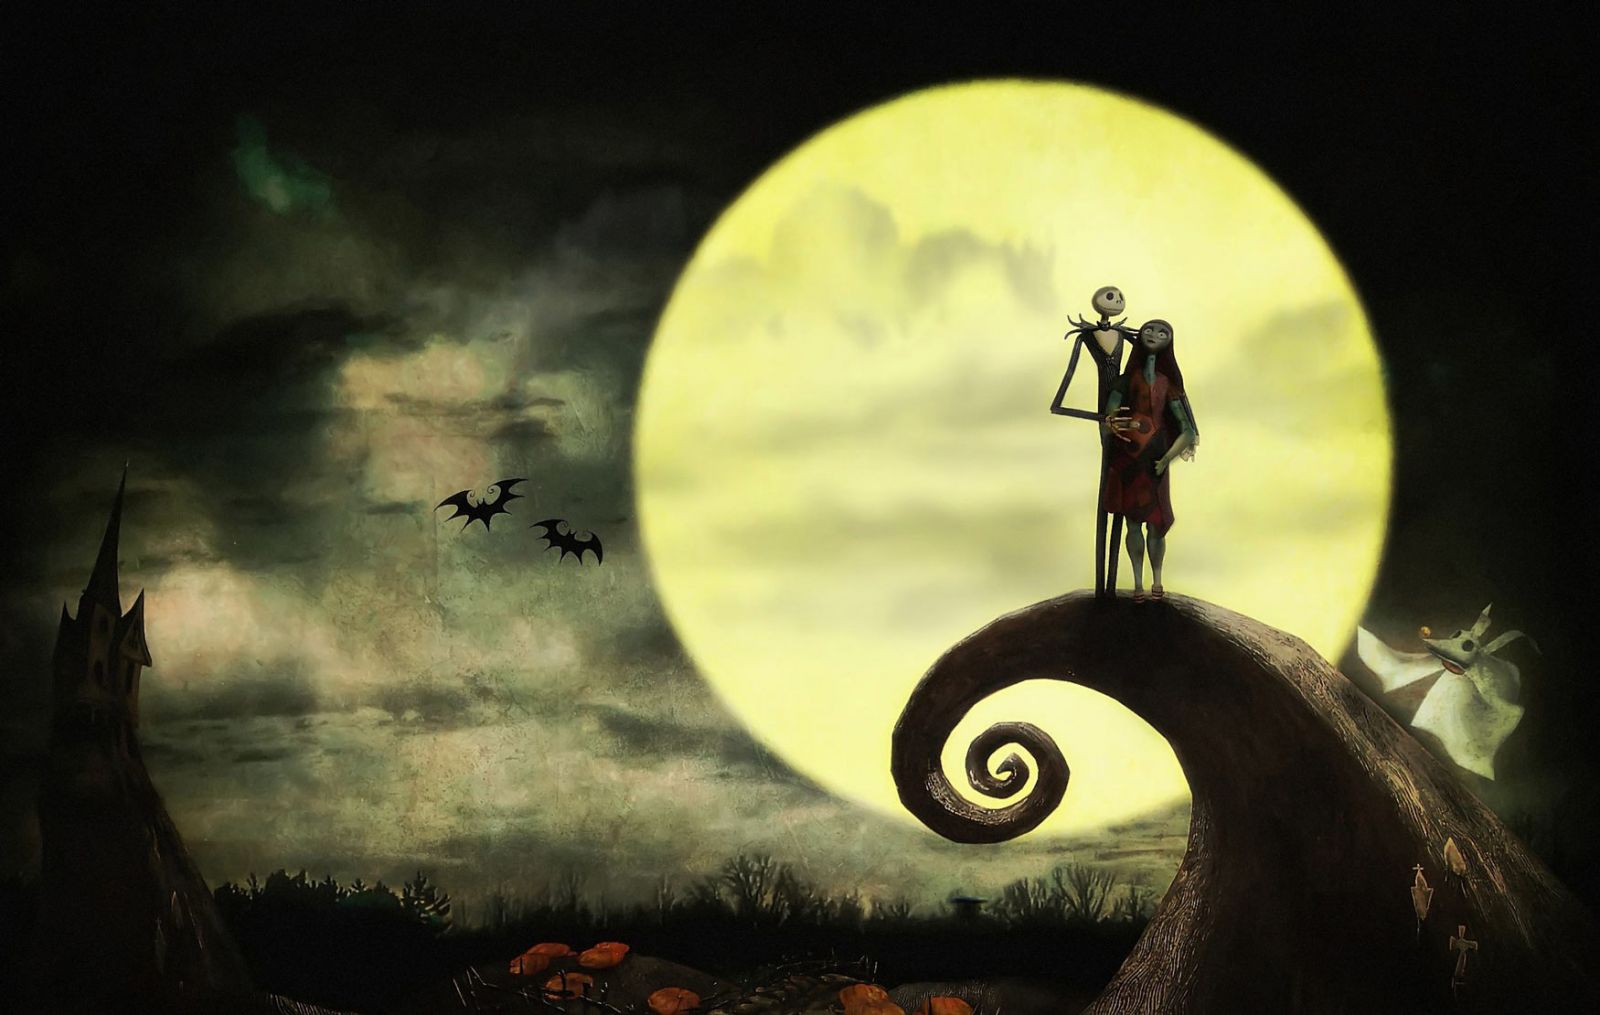 the nightmare before christmas full movie mp4 download